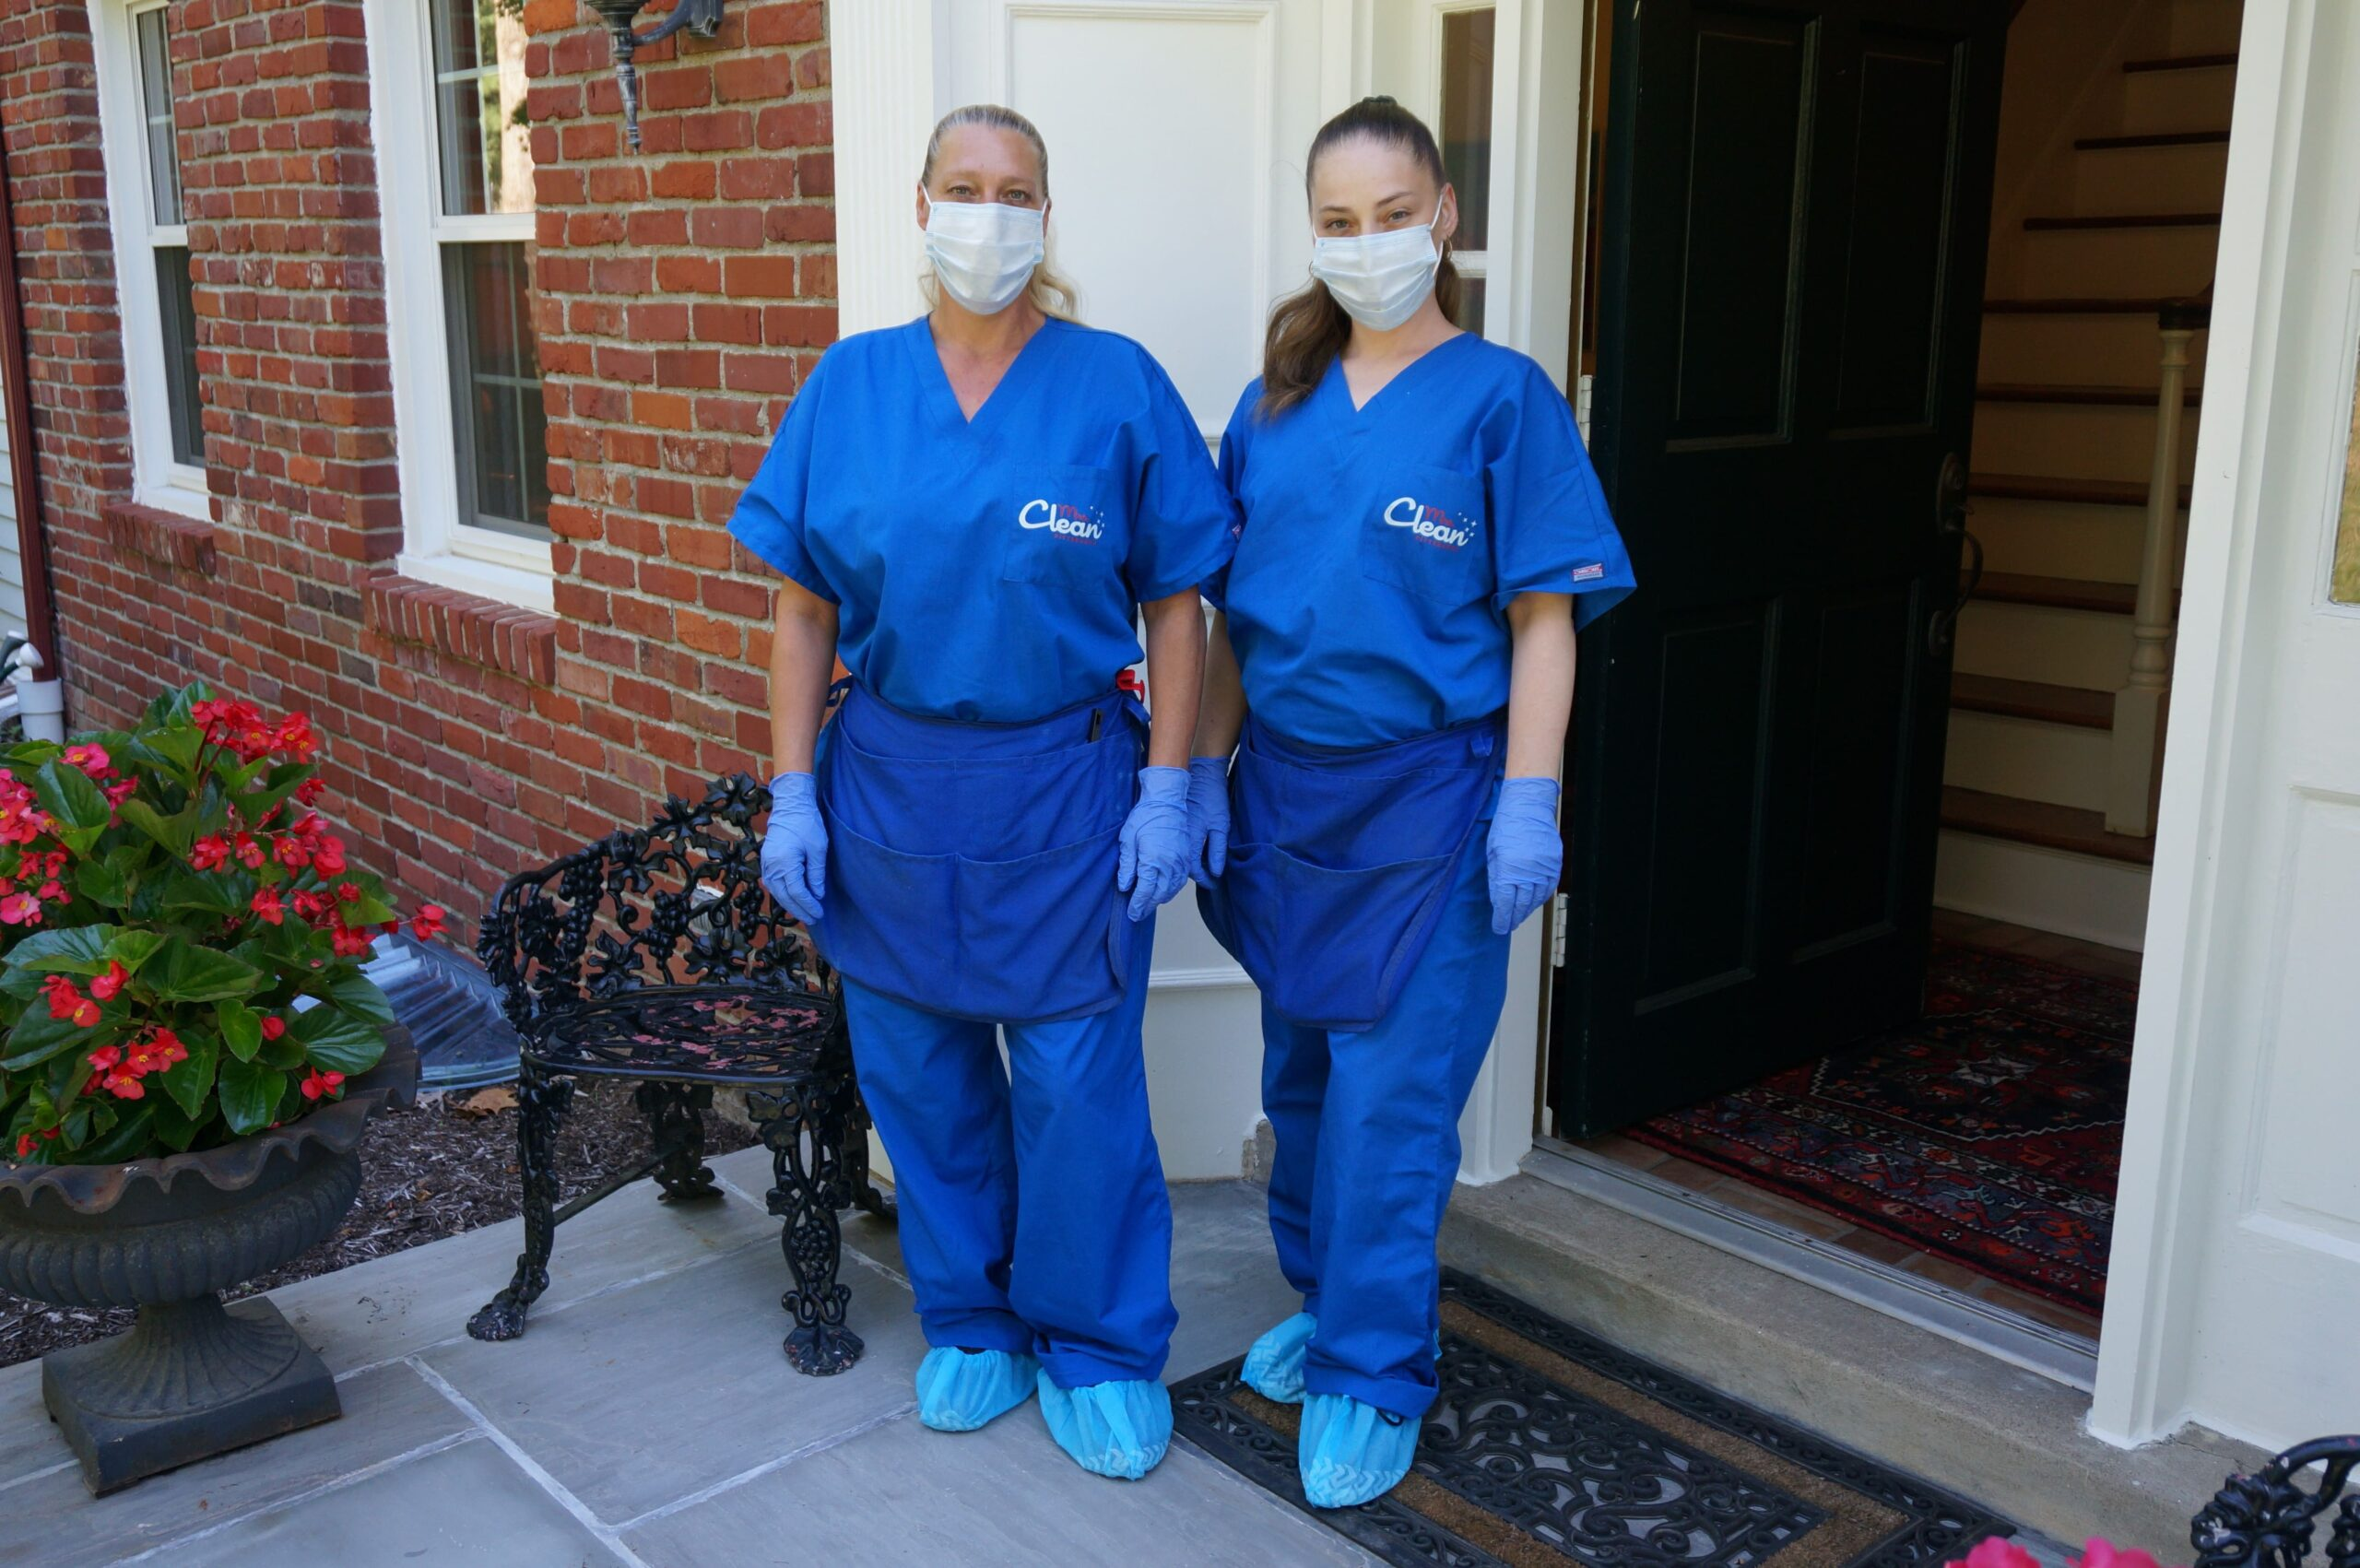 mrs clean pittsburgh, cleaning service near me, cleaning service pittsburgh, maid service near me, maid service pittsburgh, cleaners, cleaners with ppe, covid cleaning